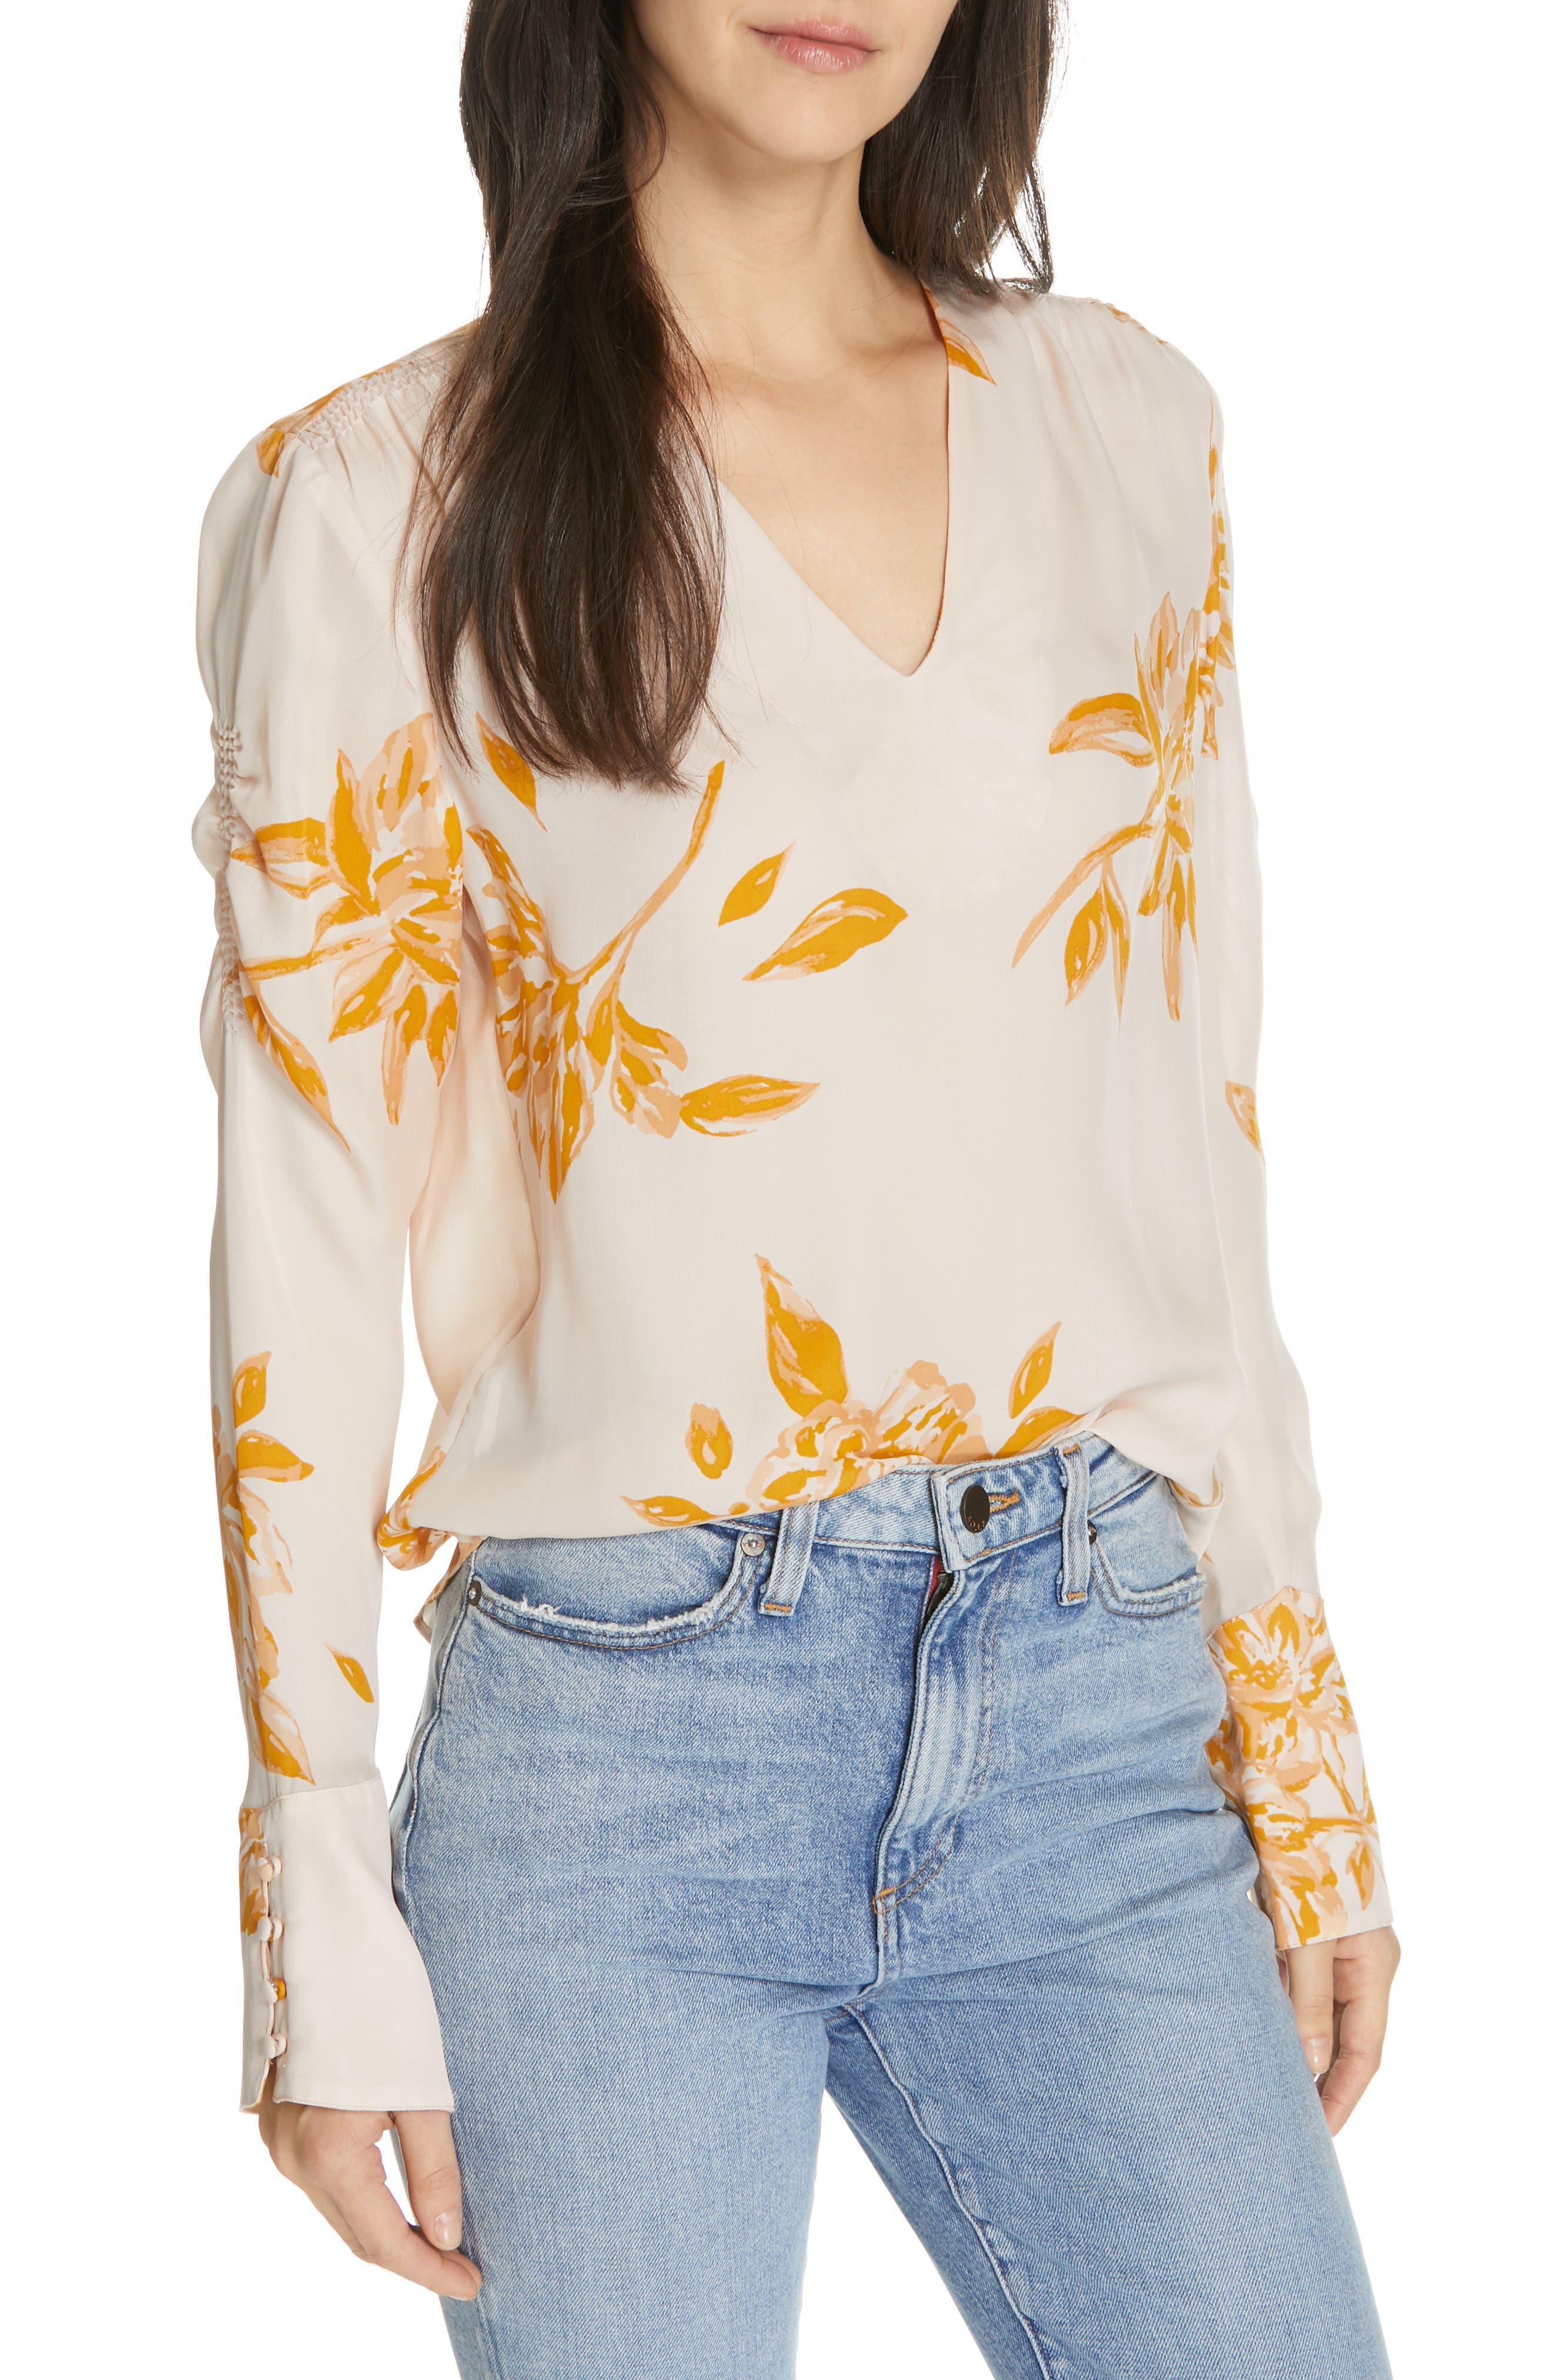 JOIE, Galvin Floral Silk Top, Main thumbnail 1, color, SHIMMER